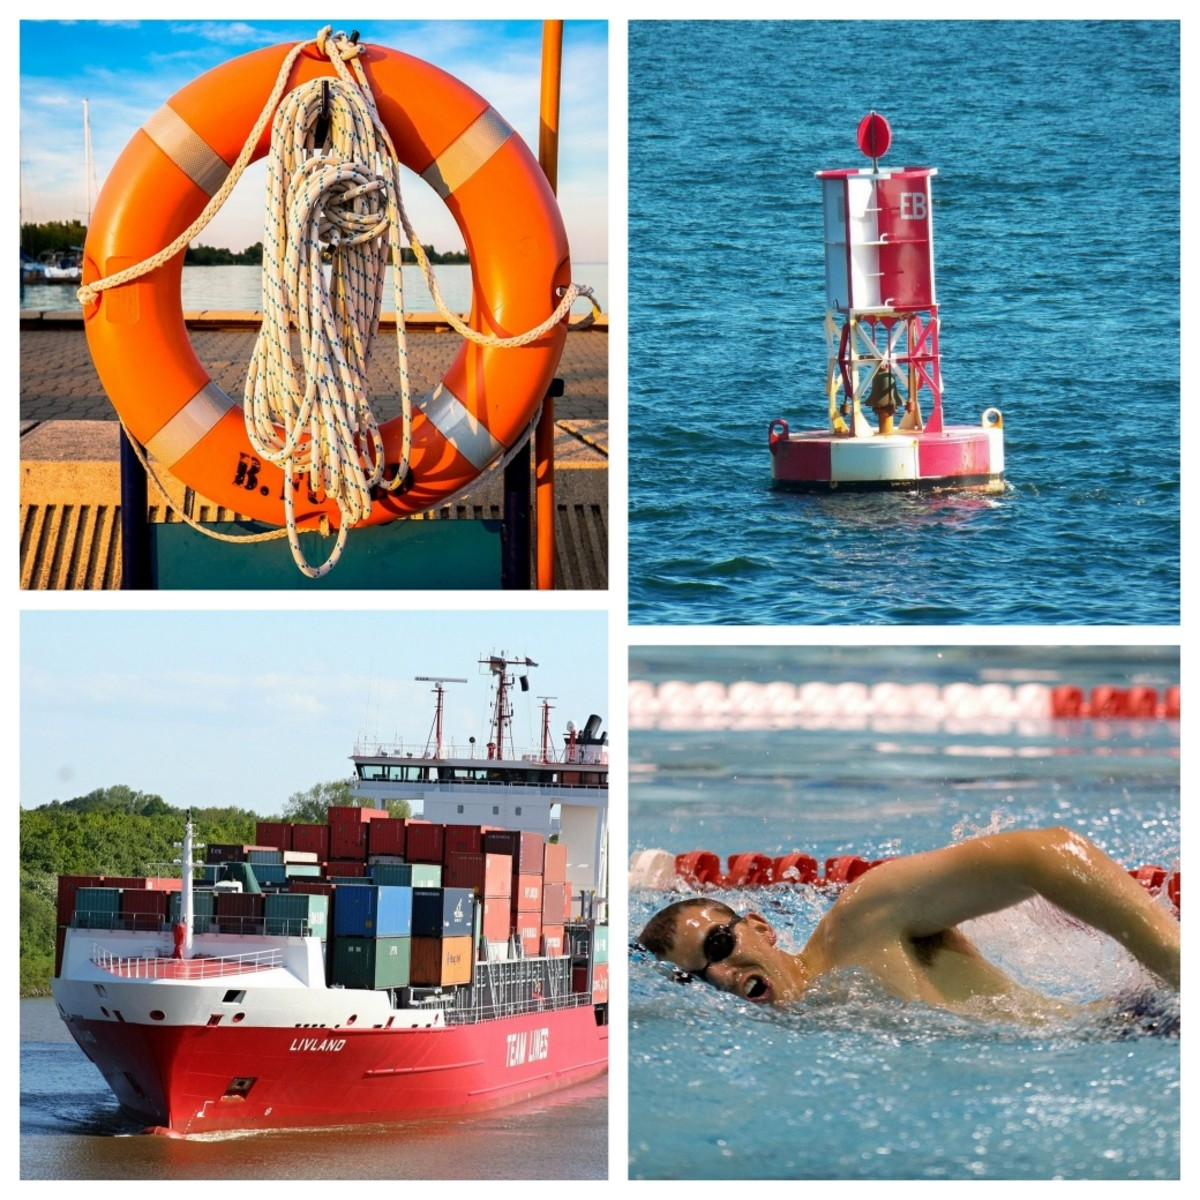 Things that need to have positive buoyancy. Clockwise from the top: A life belt, marking buoy, swimmer, ship.